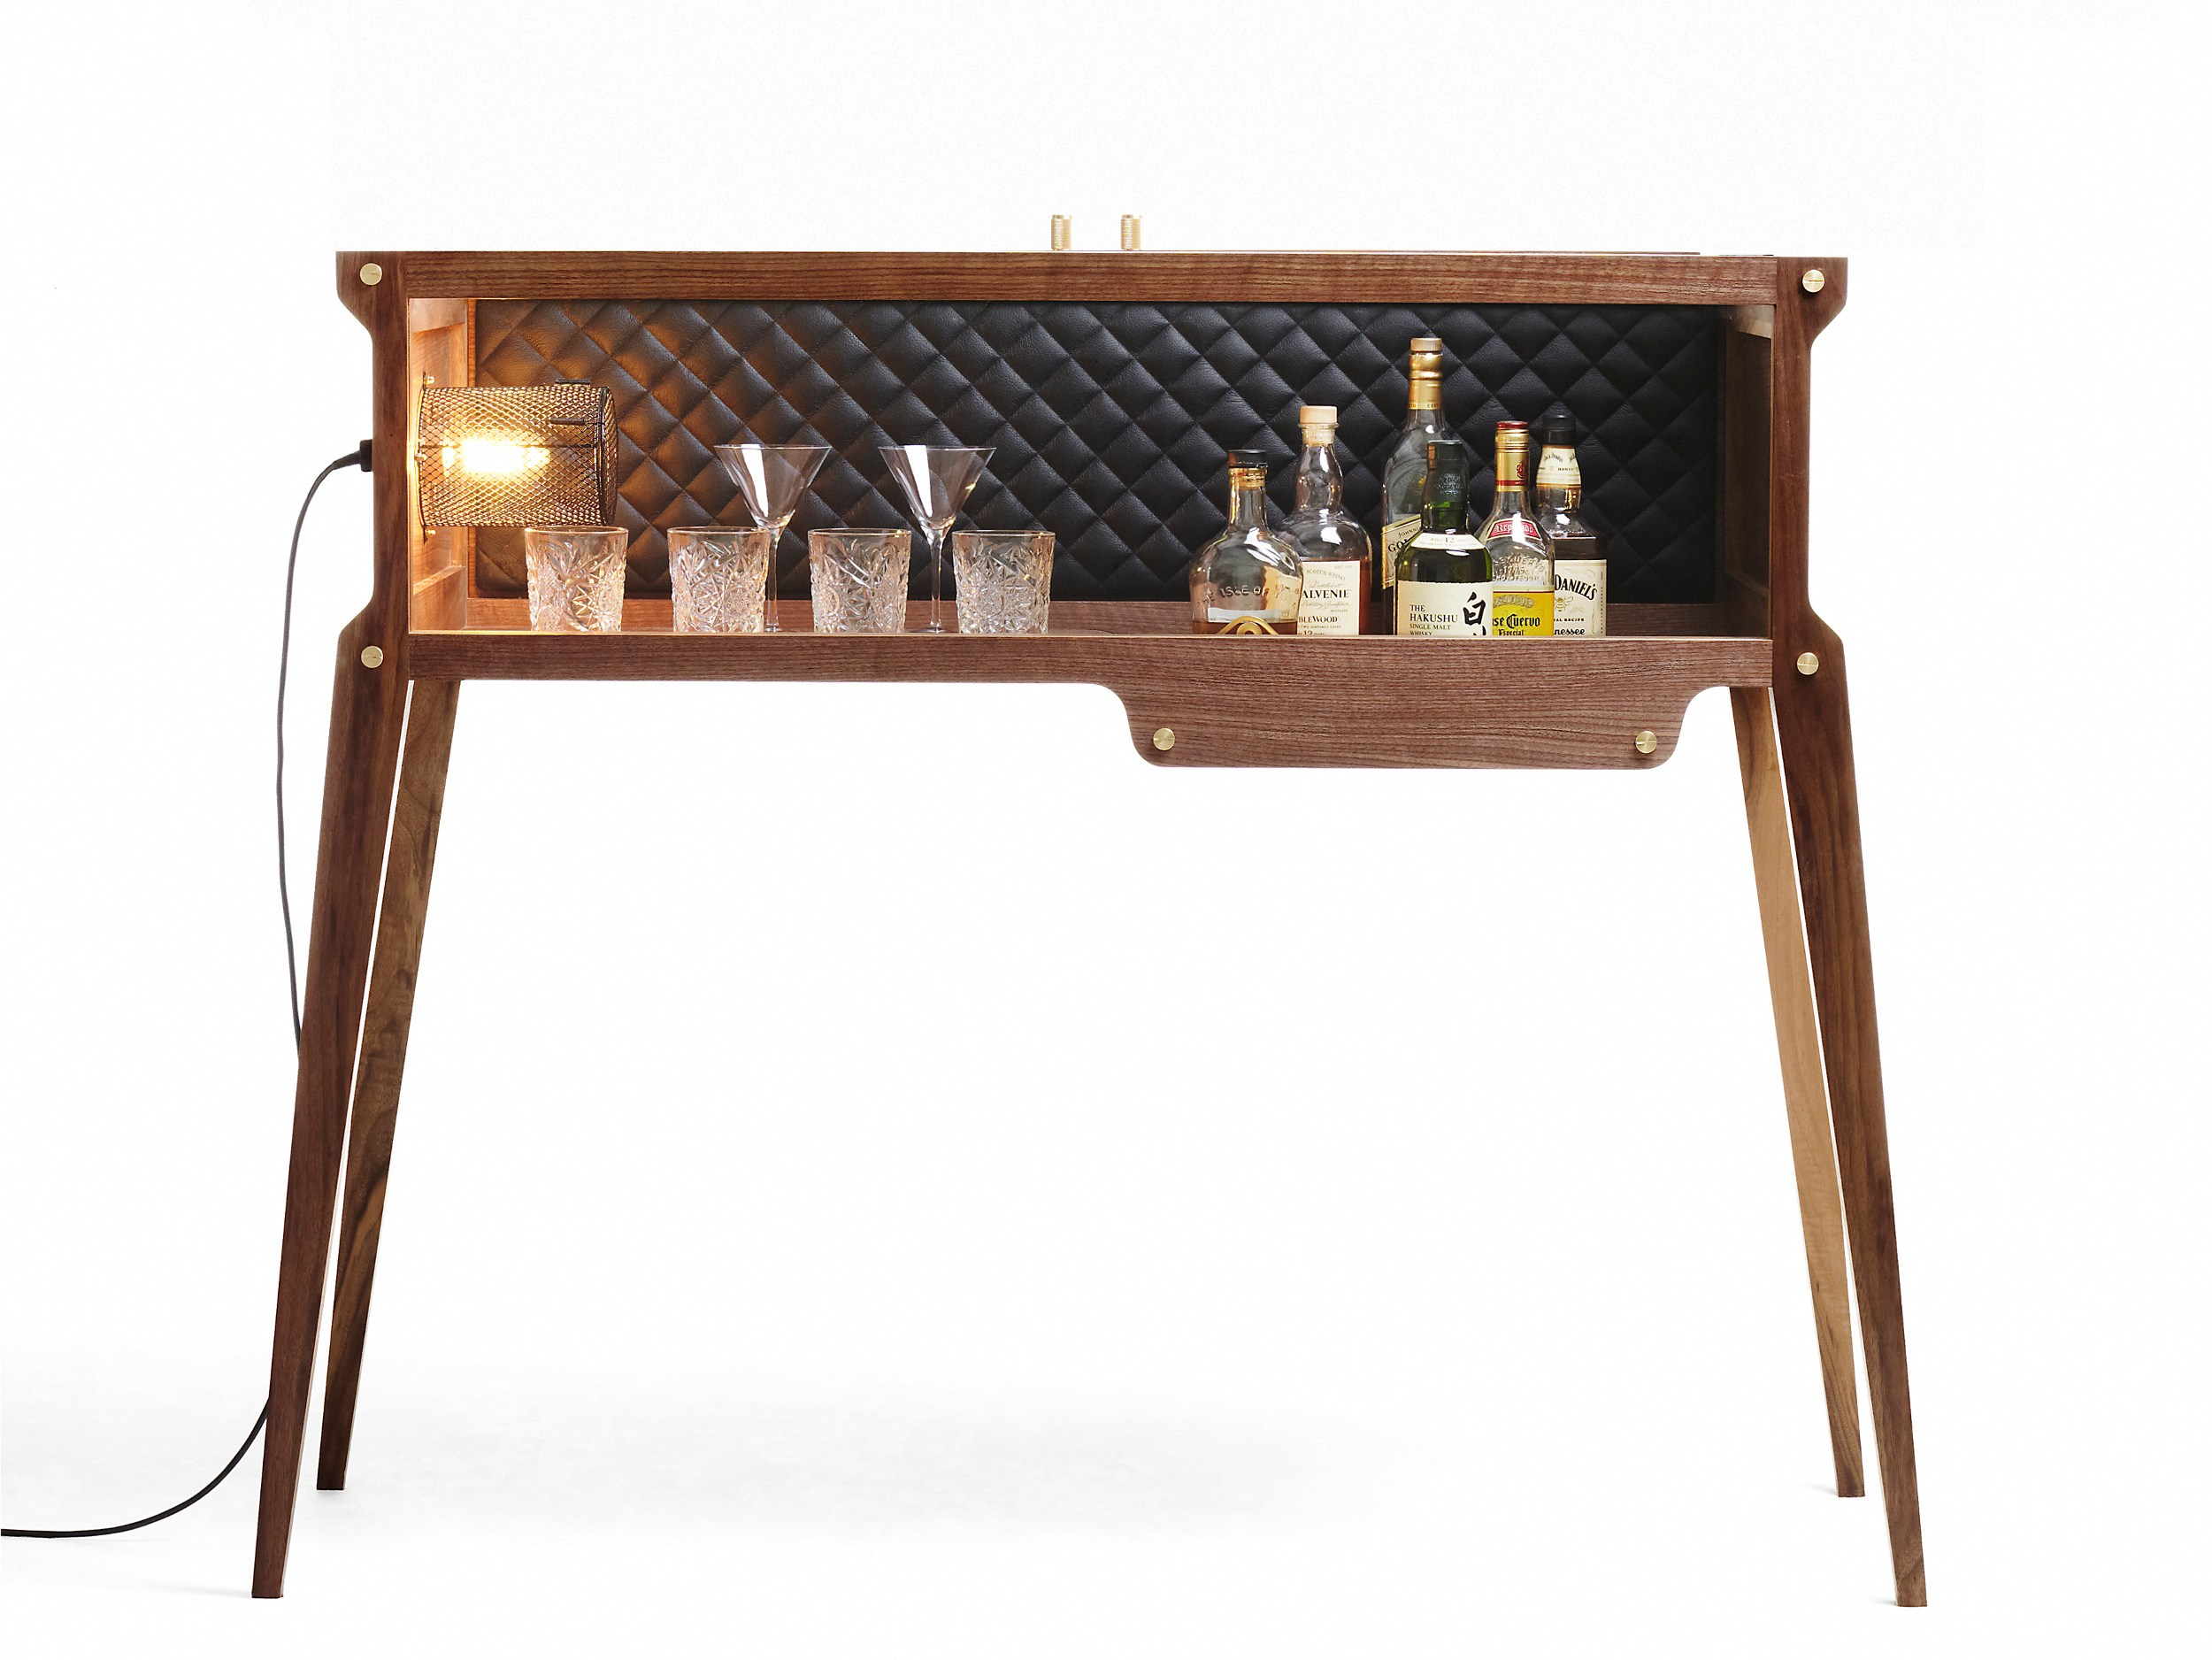 Meuble Bar The Rockstar By Buster Punch Design Massimo